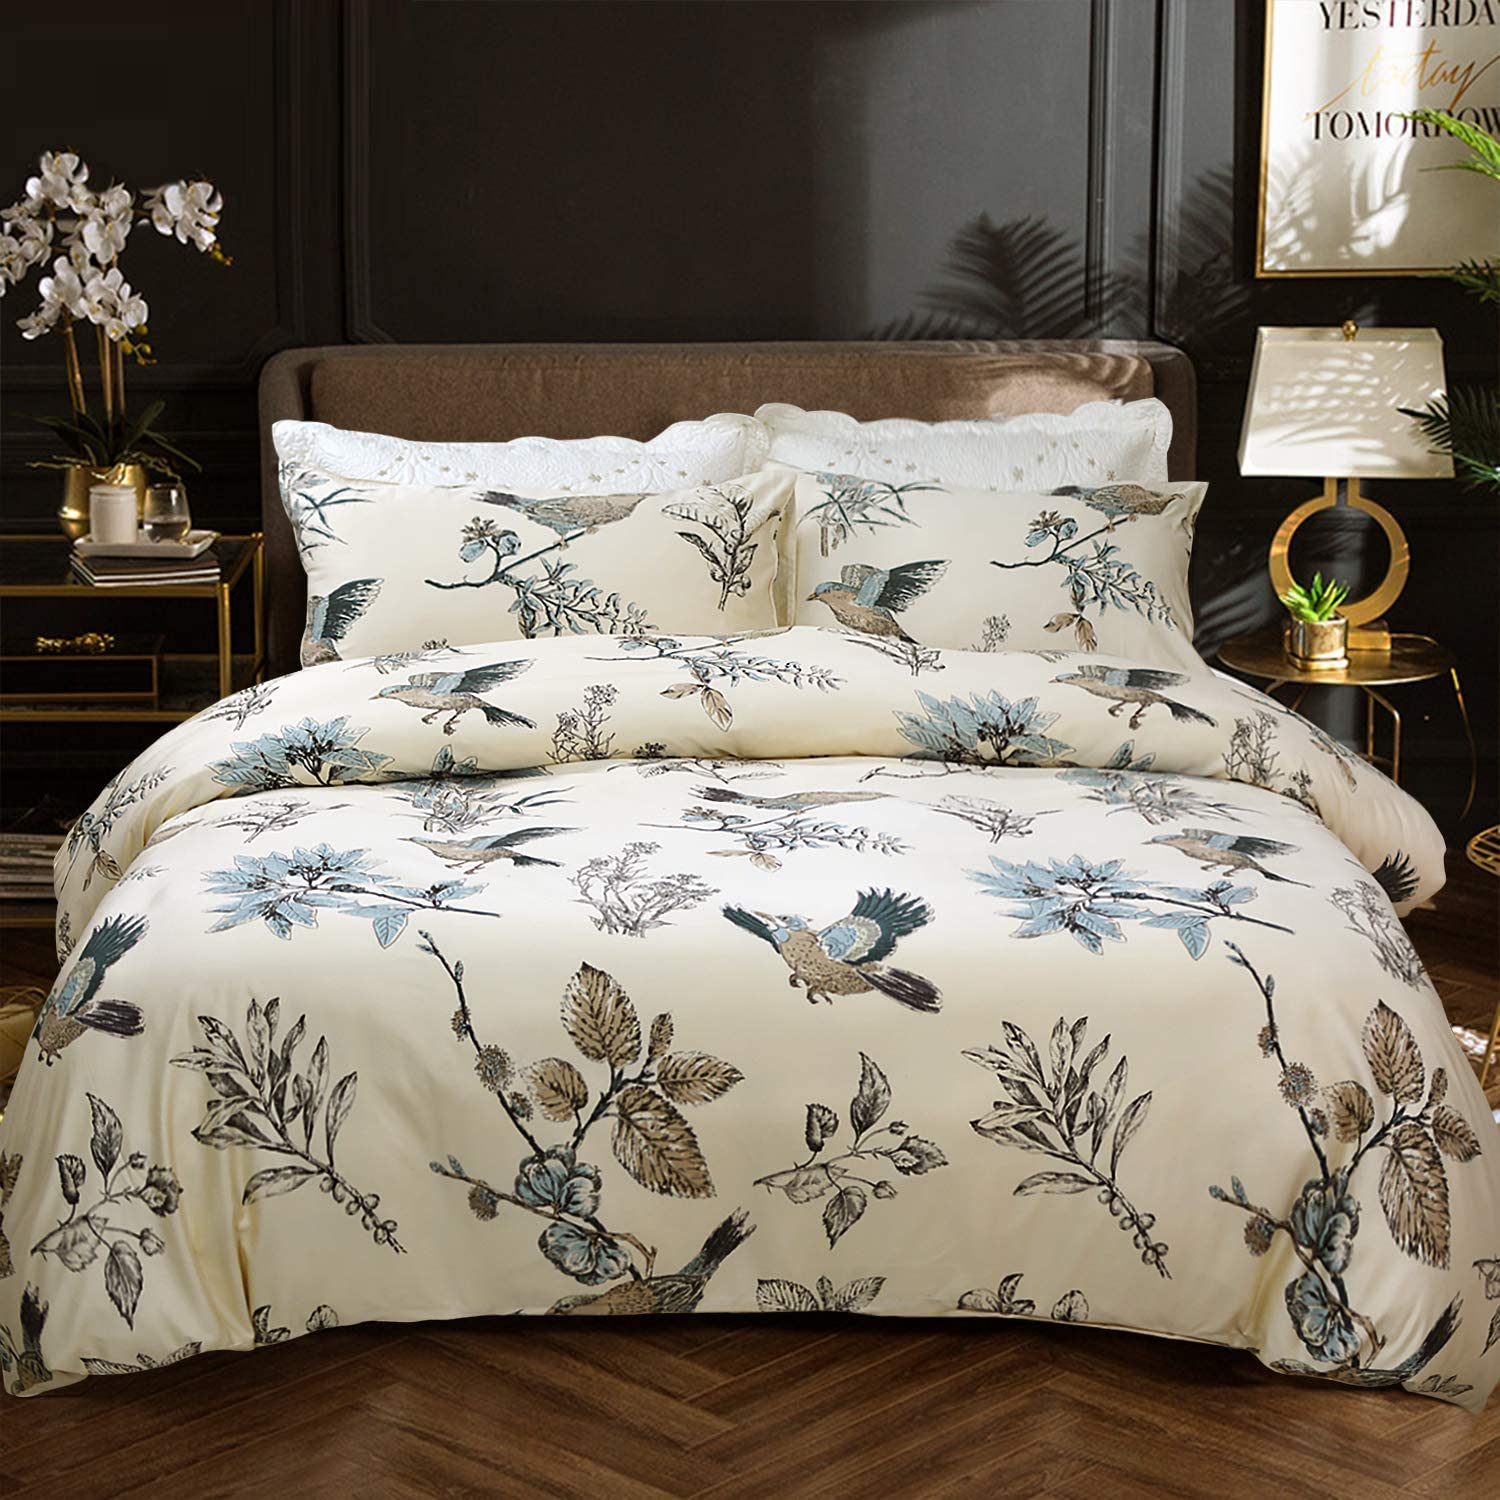 Softta Floral Birds Bedding American Country Chic Queen 3 Pcs Leaves Bird Duvet Cover Bamboo Fiber + Egyptian Cotton 800 Thread Count Super Soft Hypoallergenic for Naked Sleep Khaki